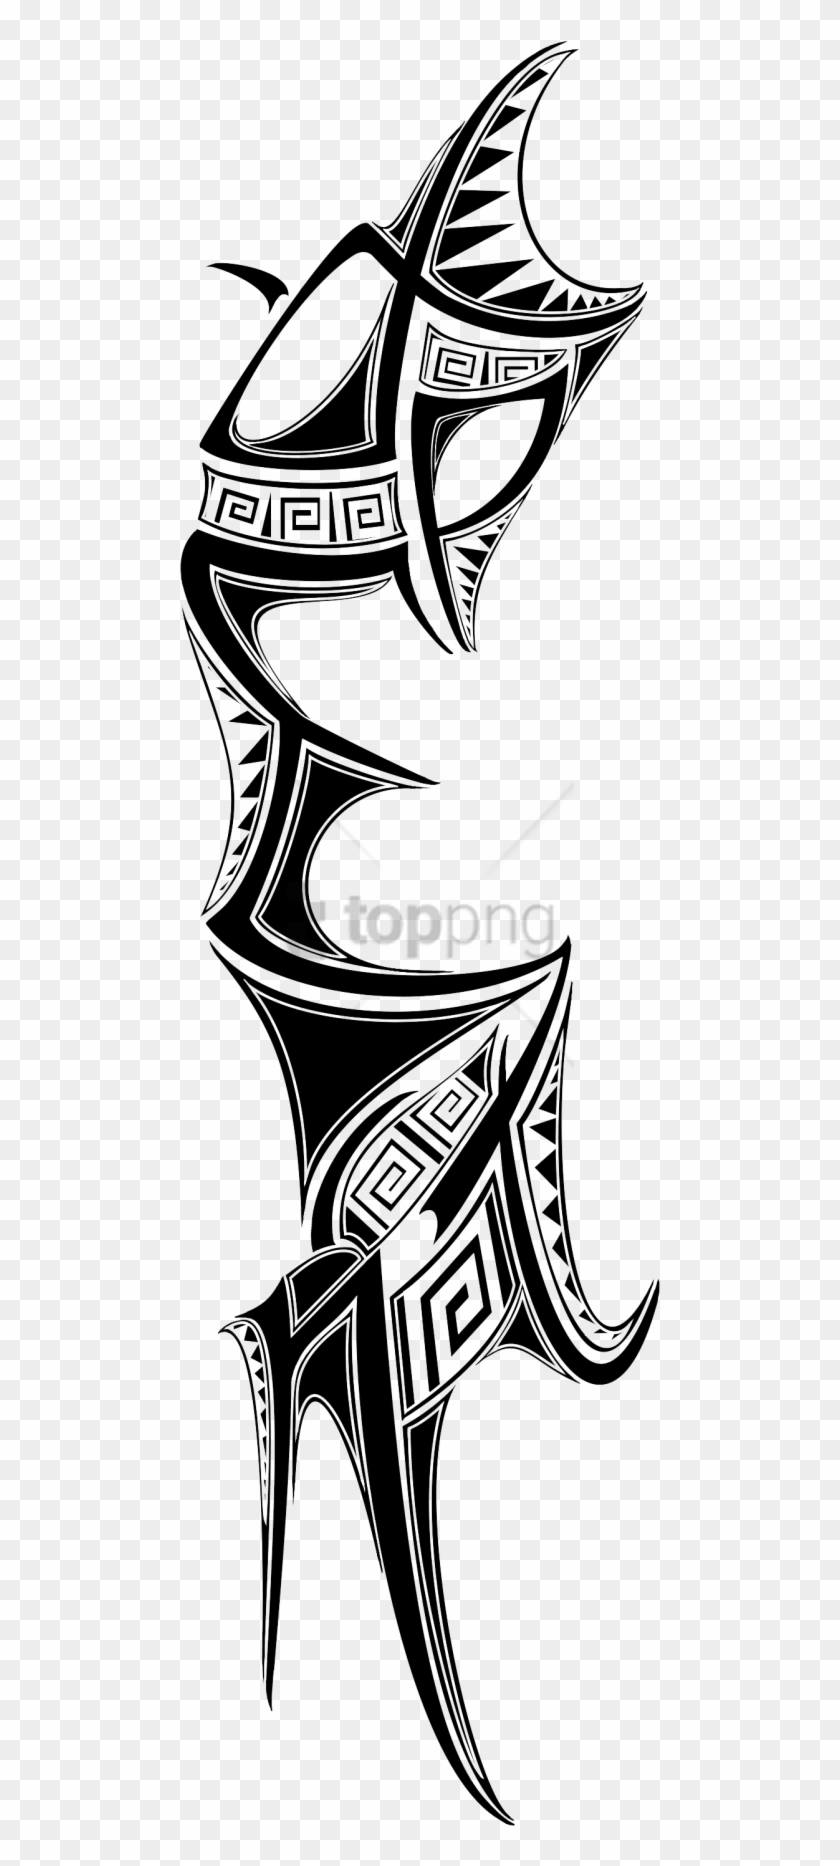 Free Png Tattoo Png Image With Transparent Background.